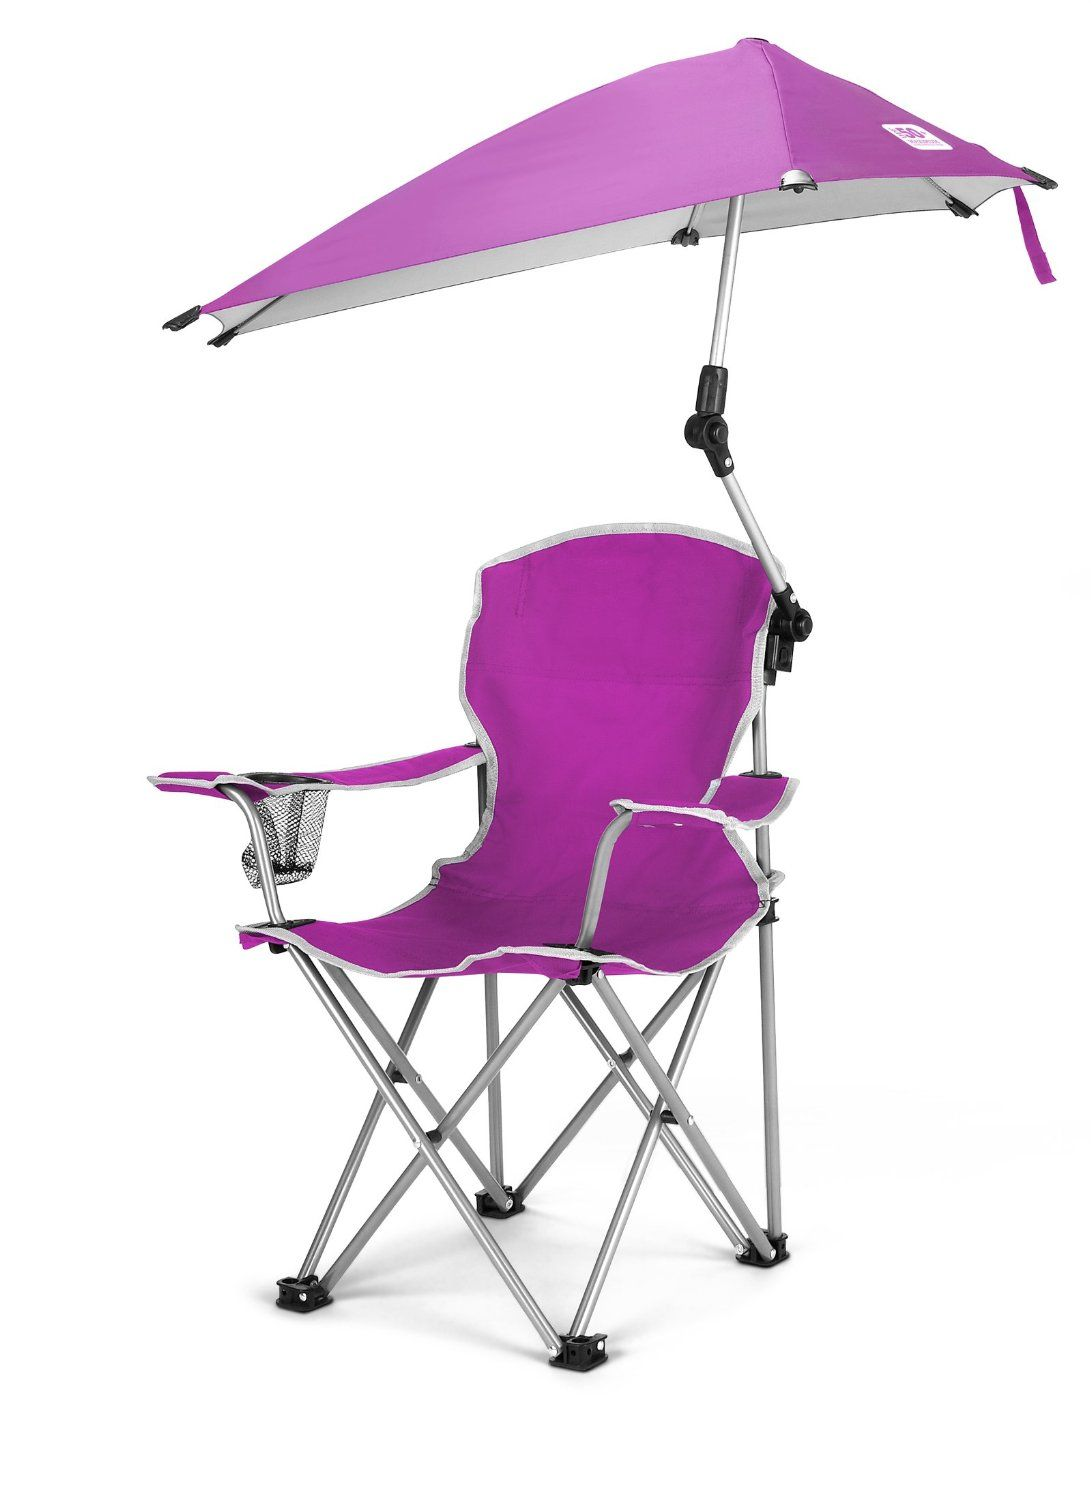 Toddler C&ing Chair With Umbrella - 360 Degree Sun and Wind Protection for Kids. Light  sc 1 st  Pinterest : bag chair with canopy - memphite.com